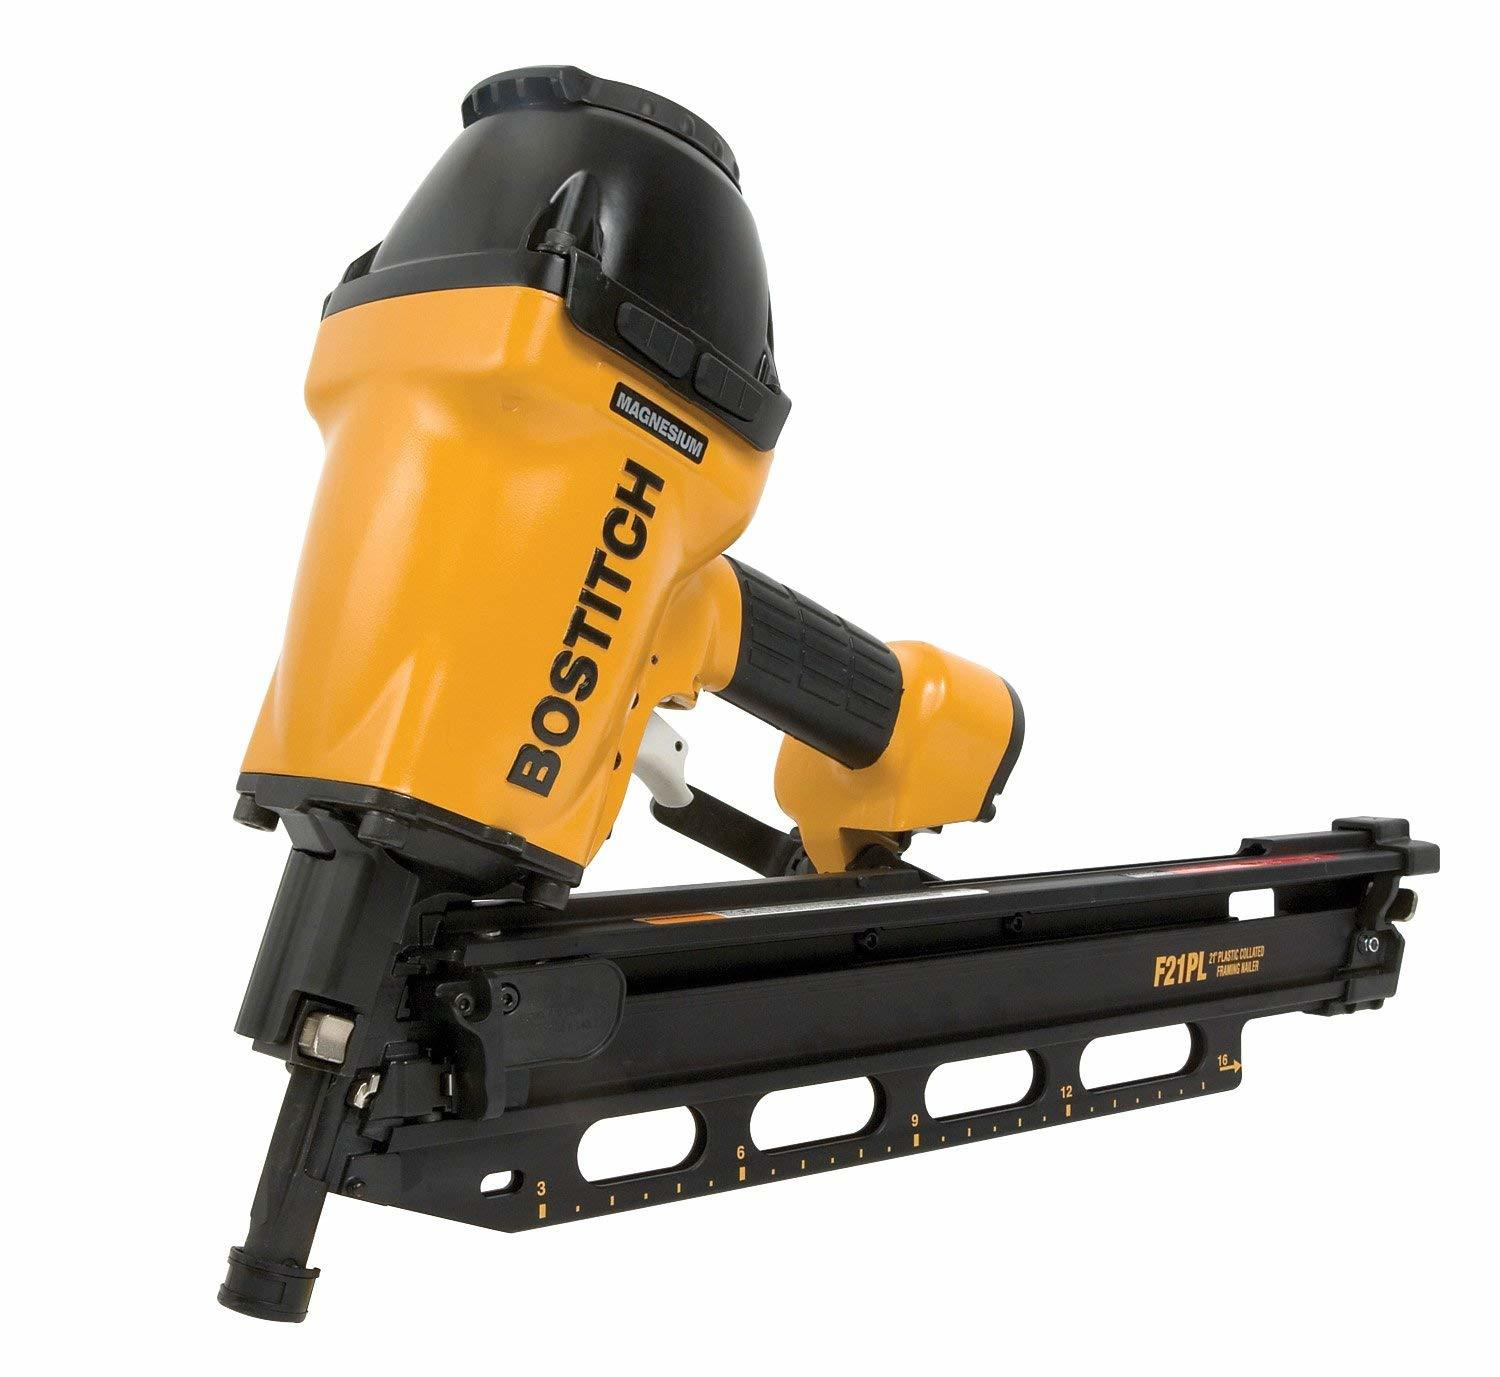 BOSTITCH F21PL Round Head Framing Nailer